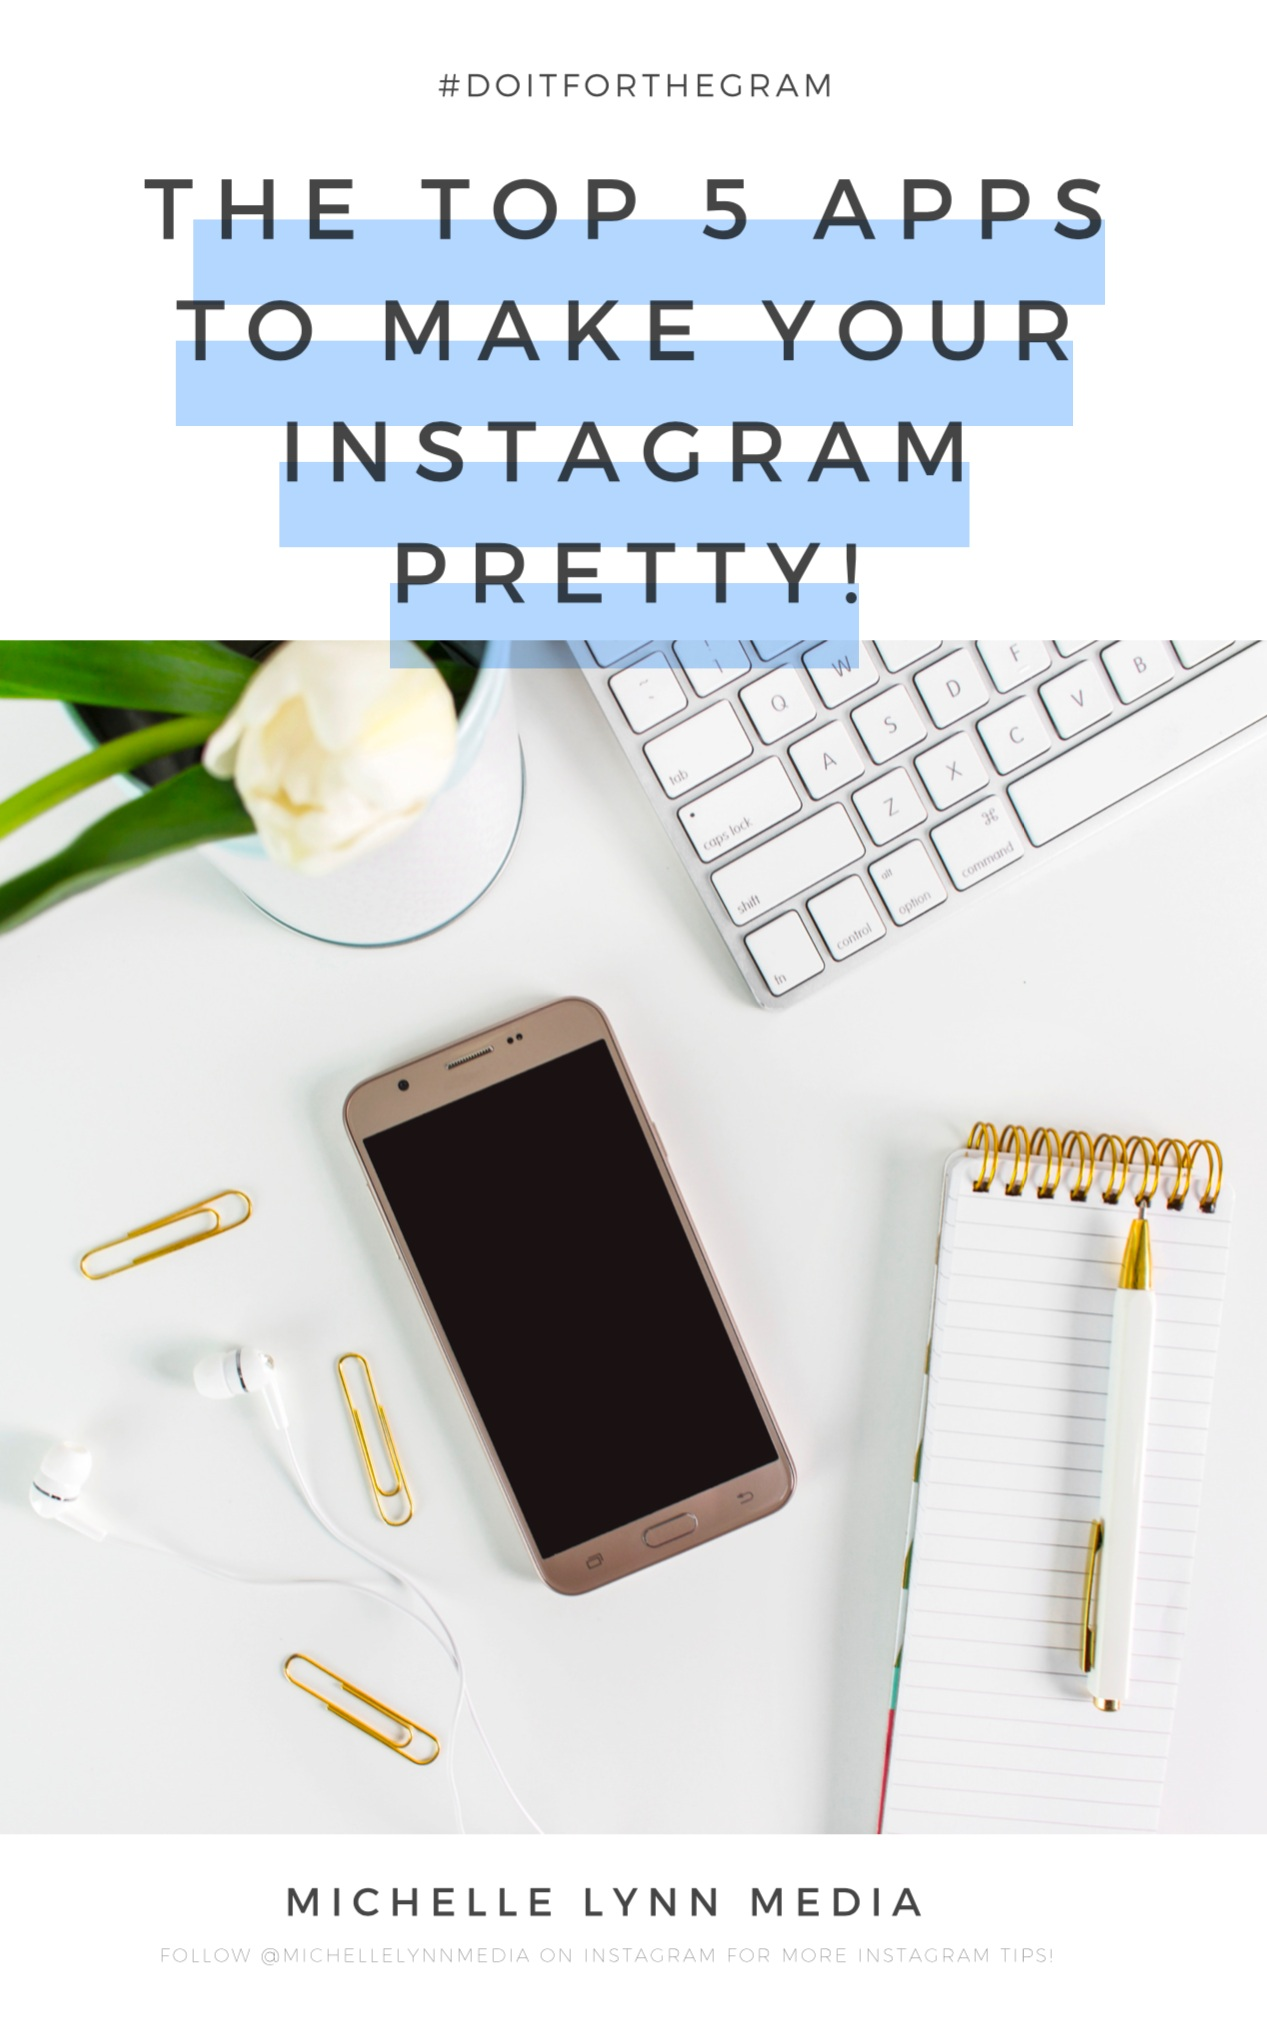 The Top 5 Apps To Make Your Instagram Pretty! | via Michelle Lynn Media